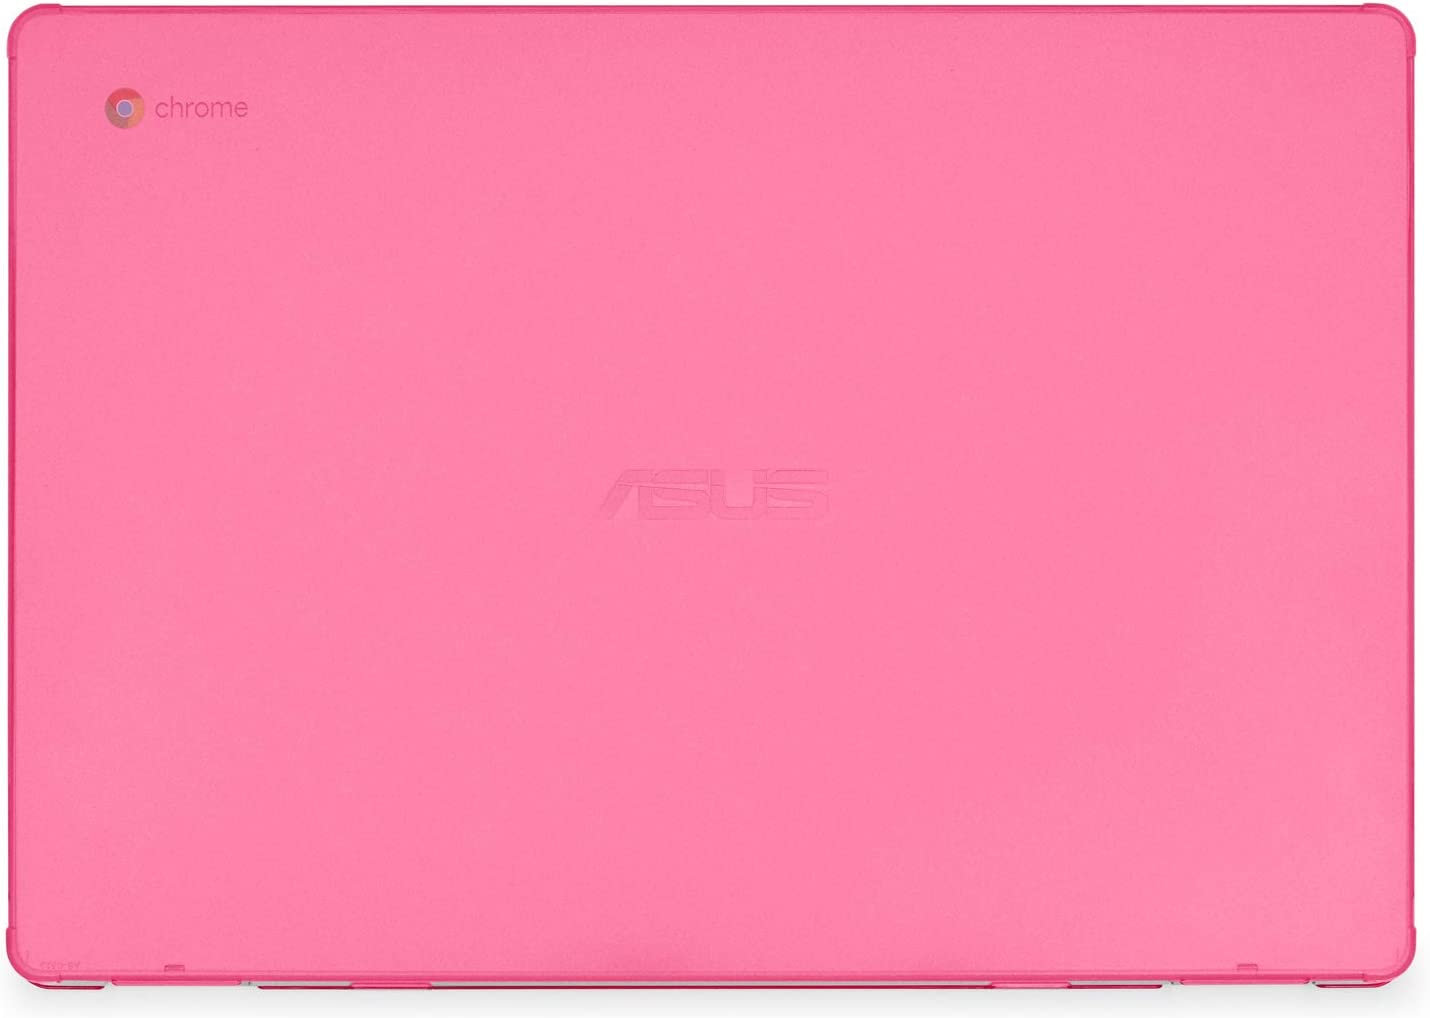 mCover Hard Shell Case for 15.6-inch ASUS Chromebook C523NA Series Laptop - ASUS C523 Pink